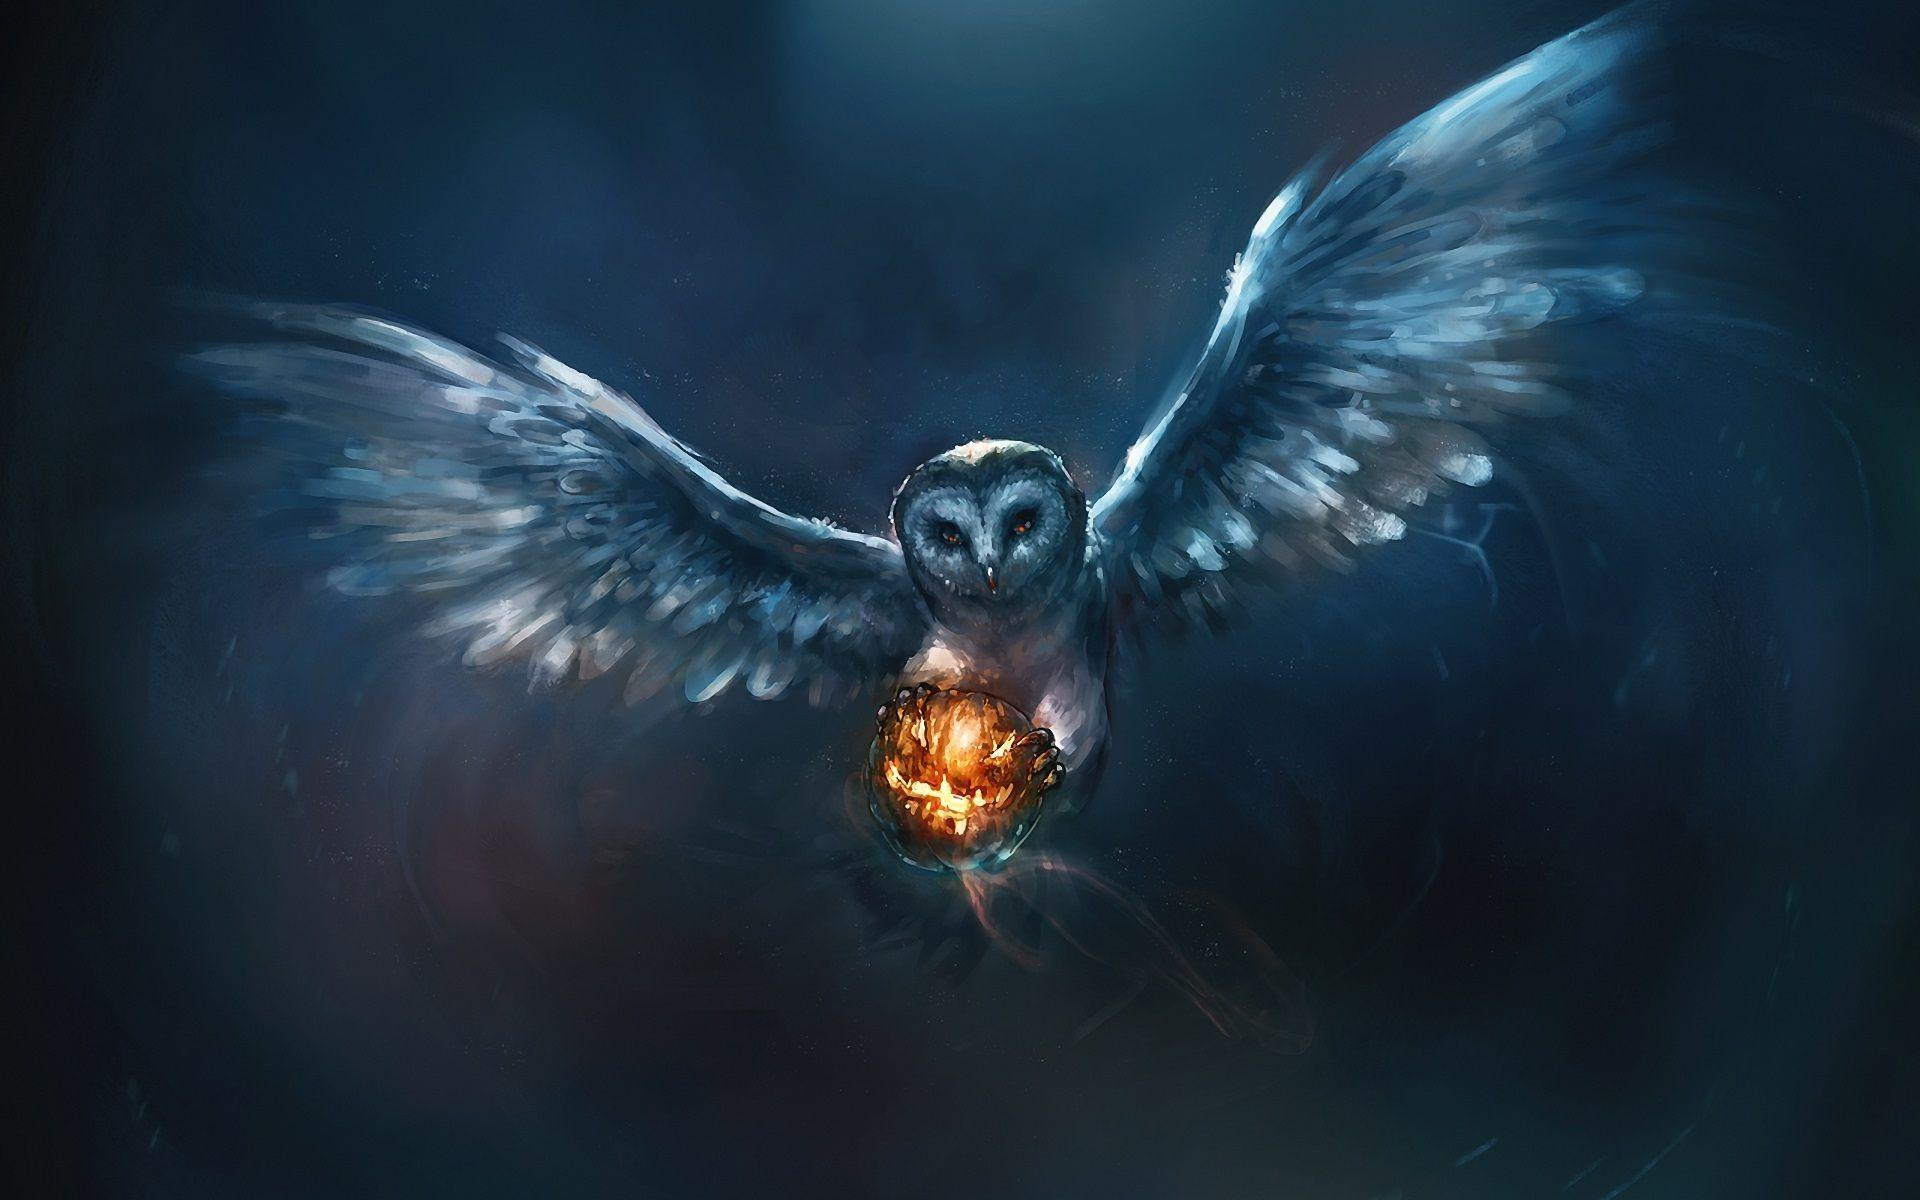 Owl Painting and Fire Ball HD Wallpaper For Desktop & Mobile